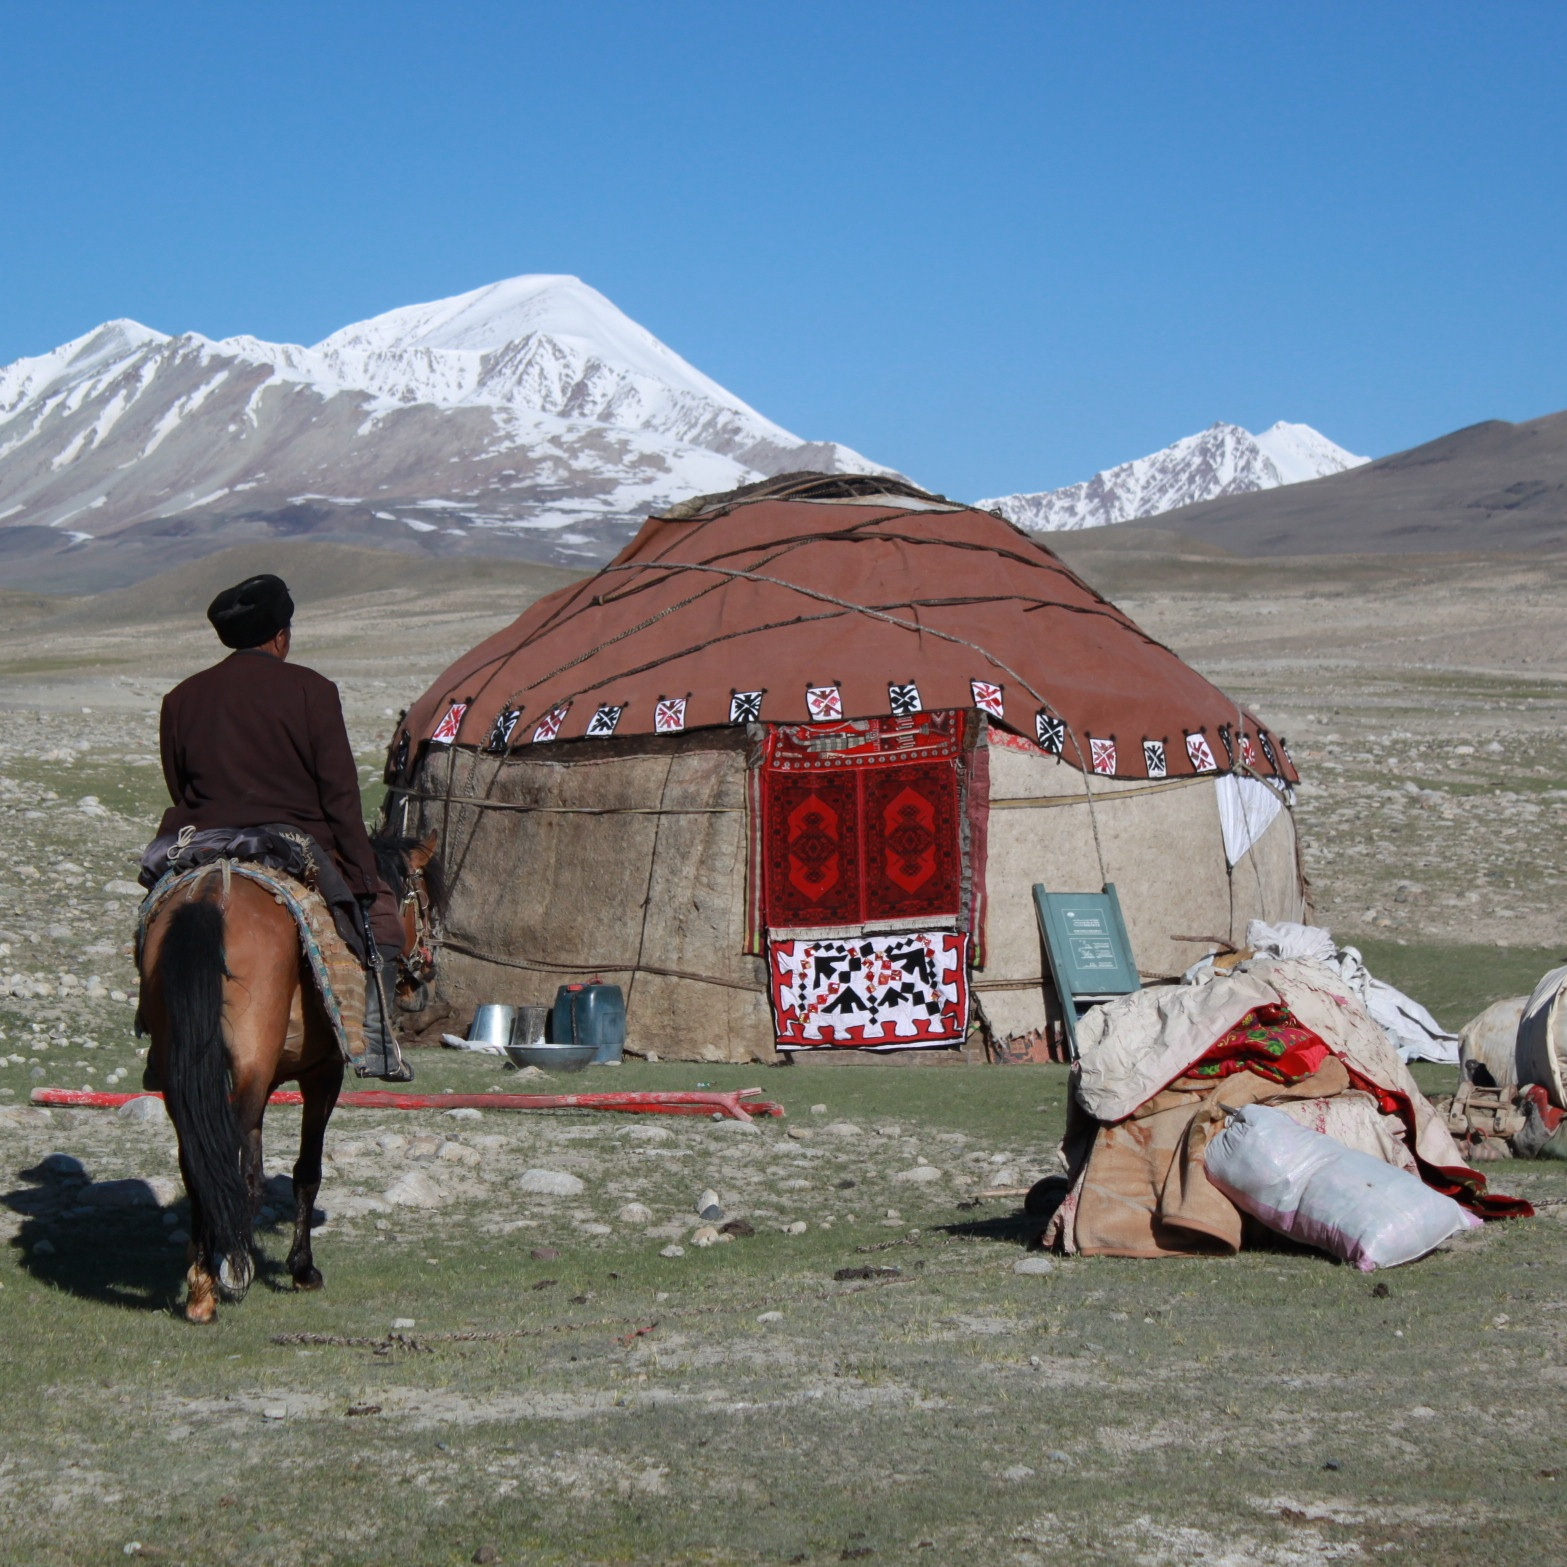 Yurt Camp - An unforgettable experience that you shouldn't miss; an overnight stay in a traditional yurt! Experience a long Kirgiz way of life, passed down from generation to generation.Usually the Kyrgyz people sleep on the floor, equipped with thick blankets. To heat up the yurt, they use a small coal stove. Enjoy the cosy atmosphere inside and a wonderful spangled sky outside.It is possible to stay in Alichur and Karakul villages in a traditional Yurt.Located in Murgab district.